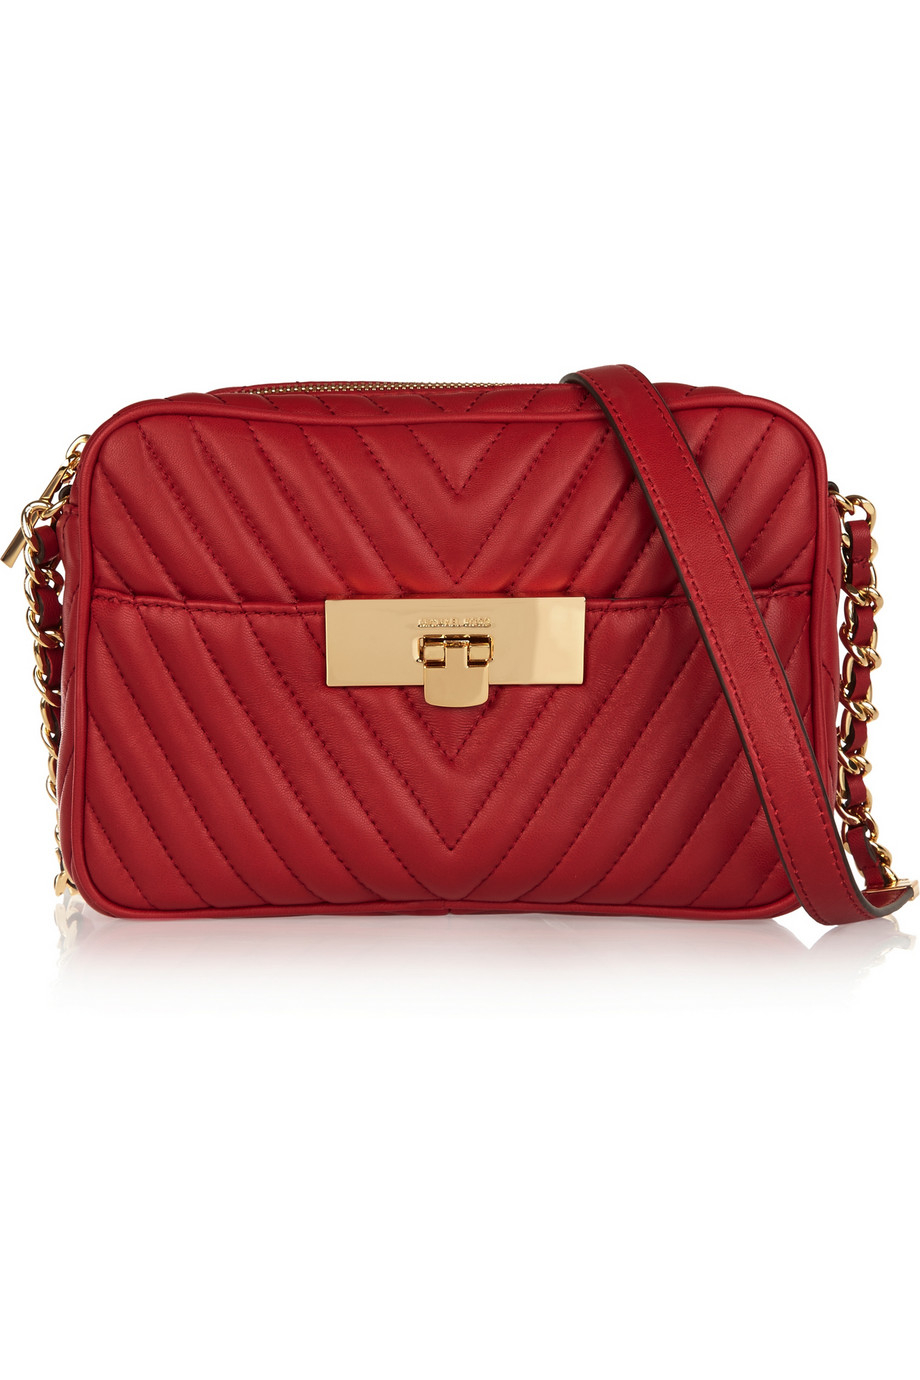 Michael michael kors Susannah Small Quilted Leather Shoulder Bag ...